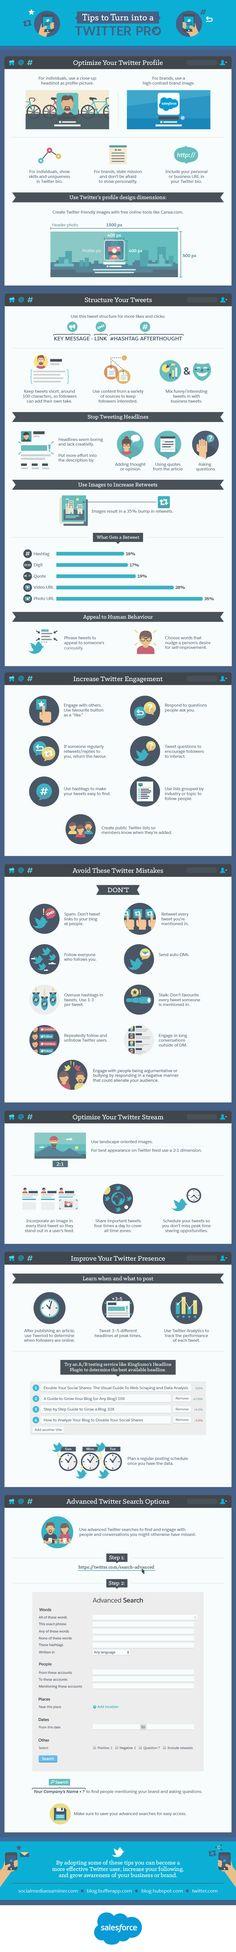 Twitter Tips to Turn into a #Twitter Pro